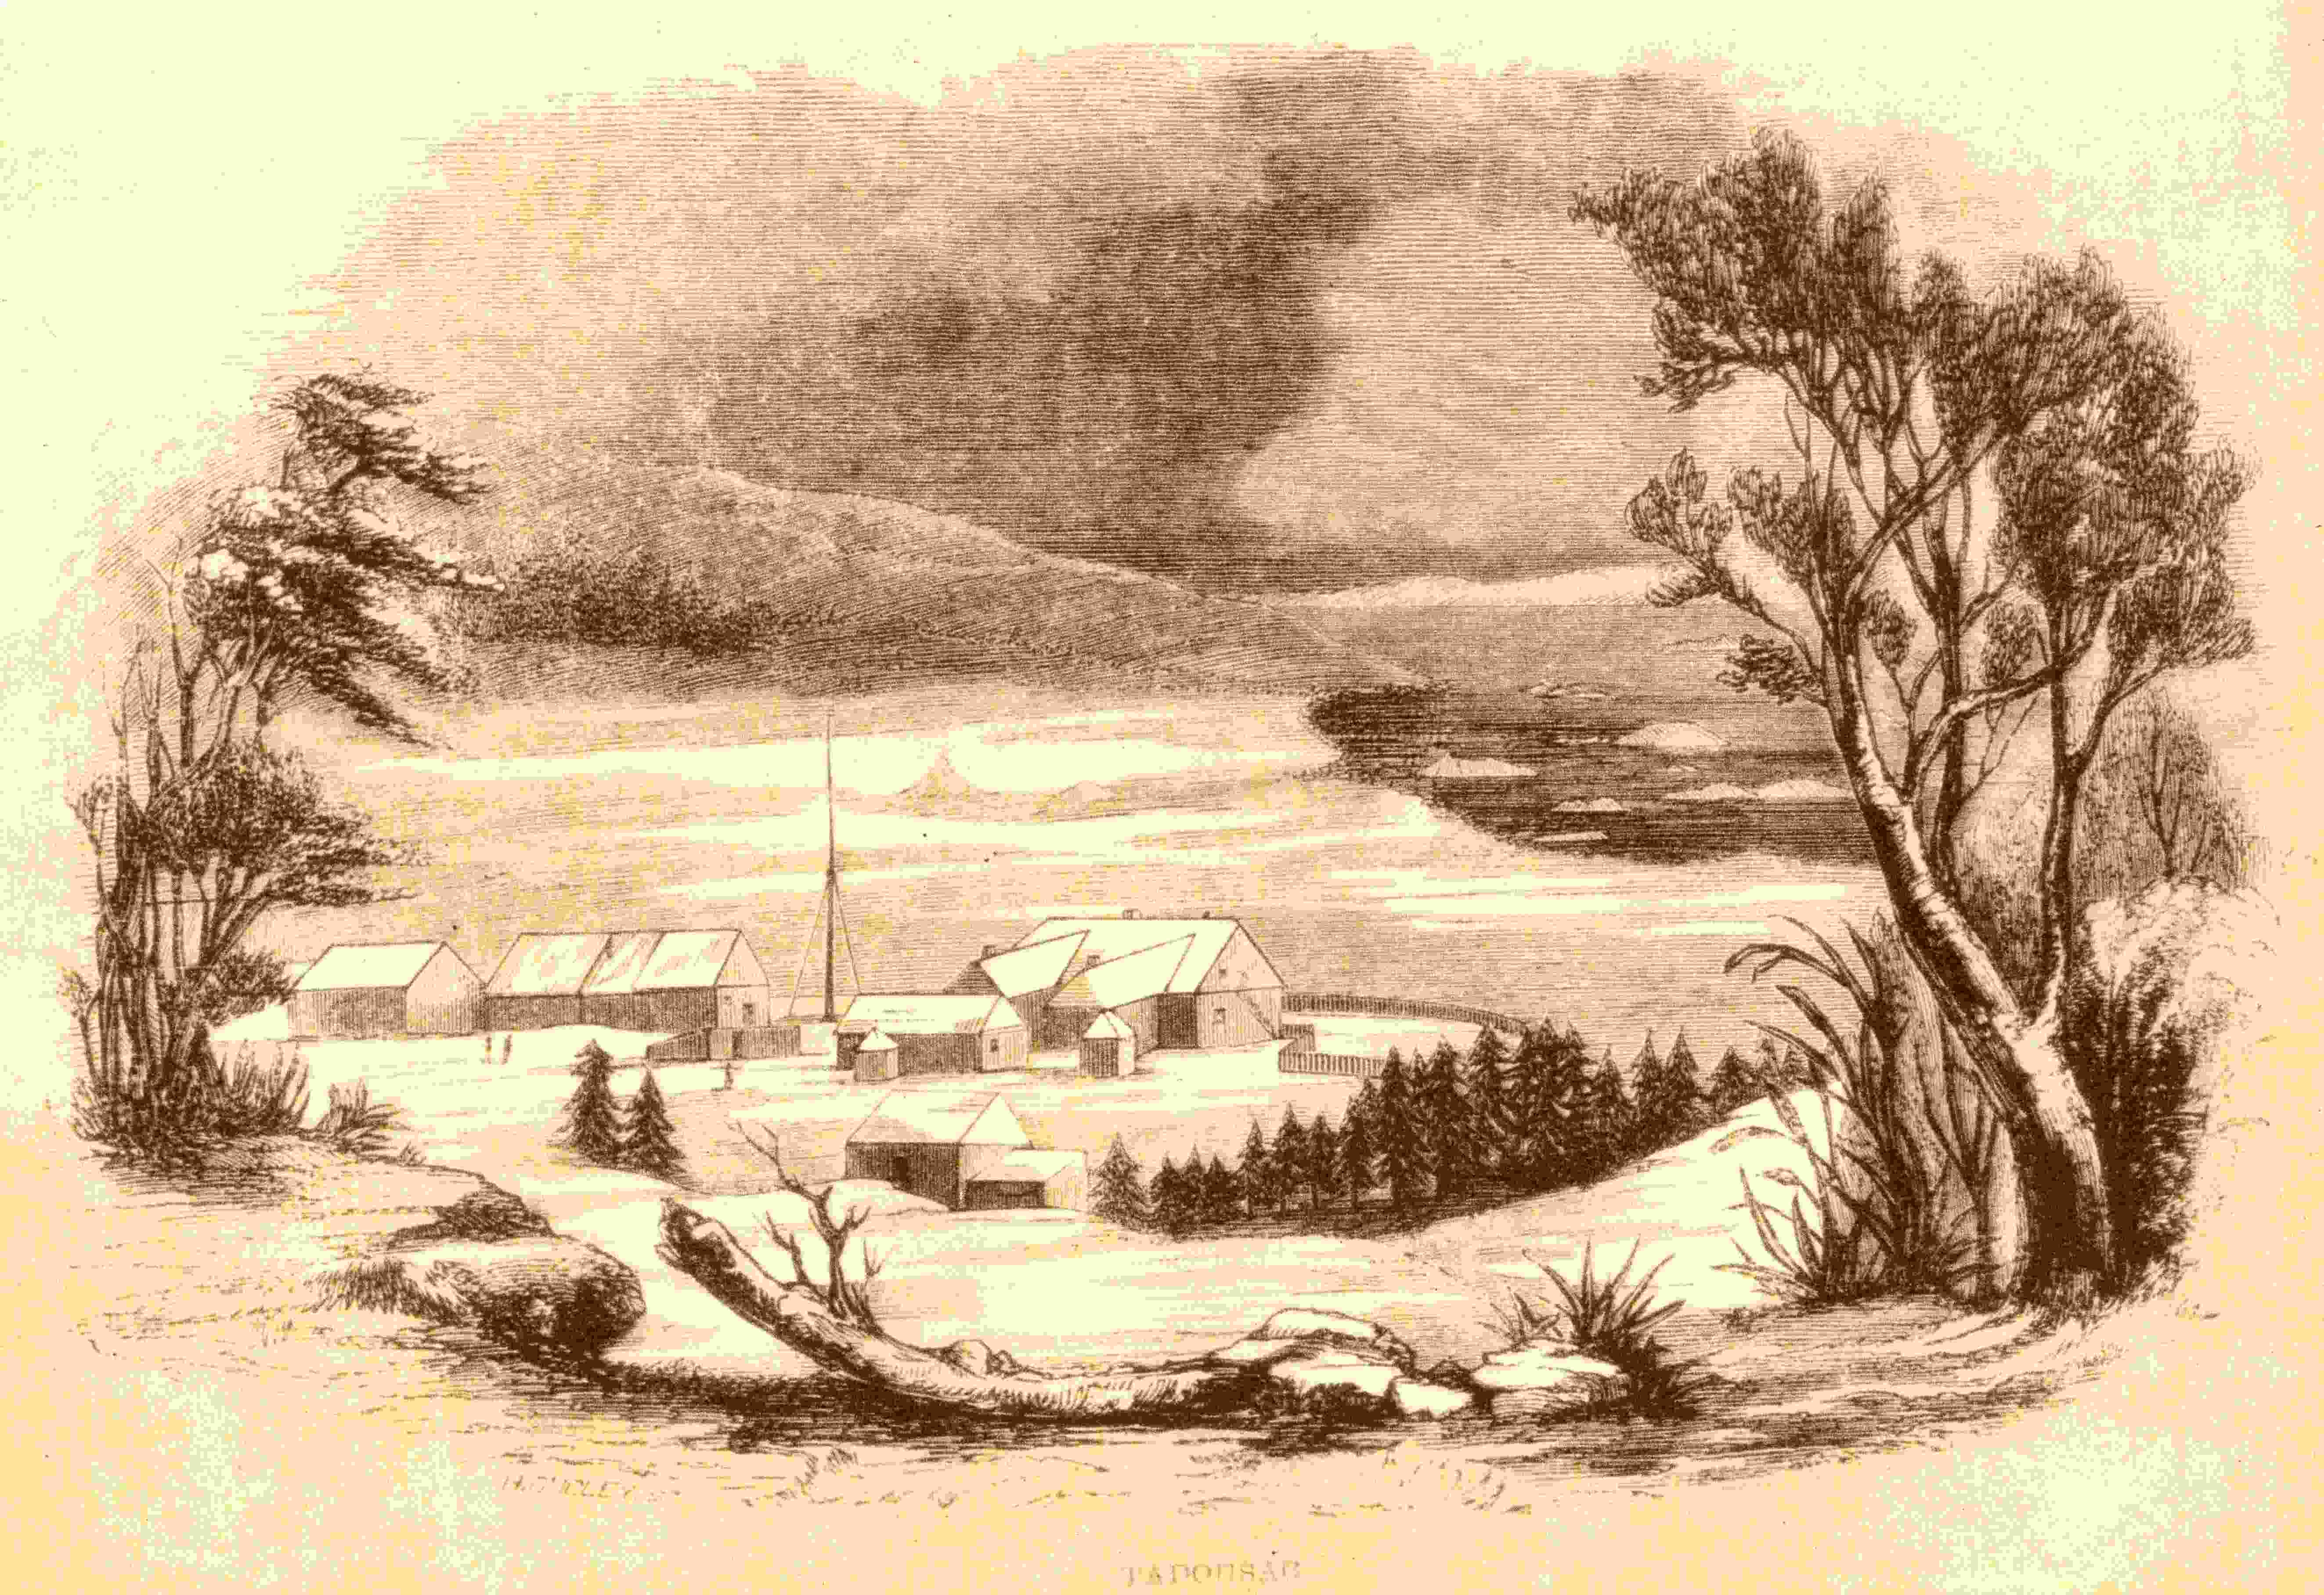 A drawing of several old buildings against mountains and near a waterway.